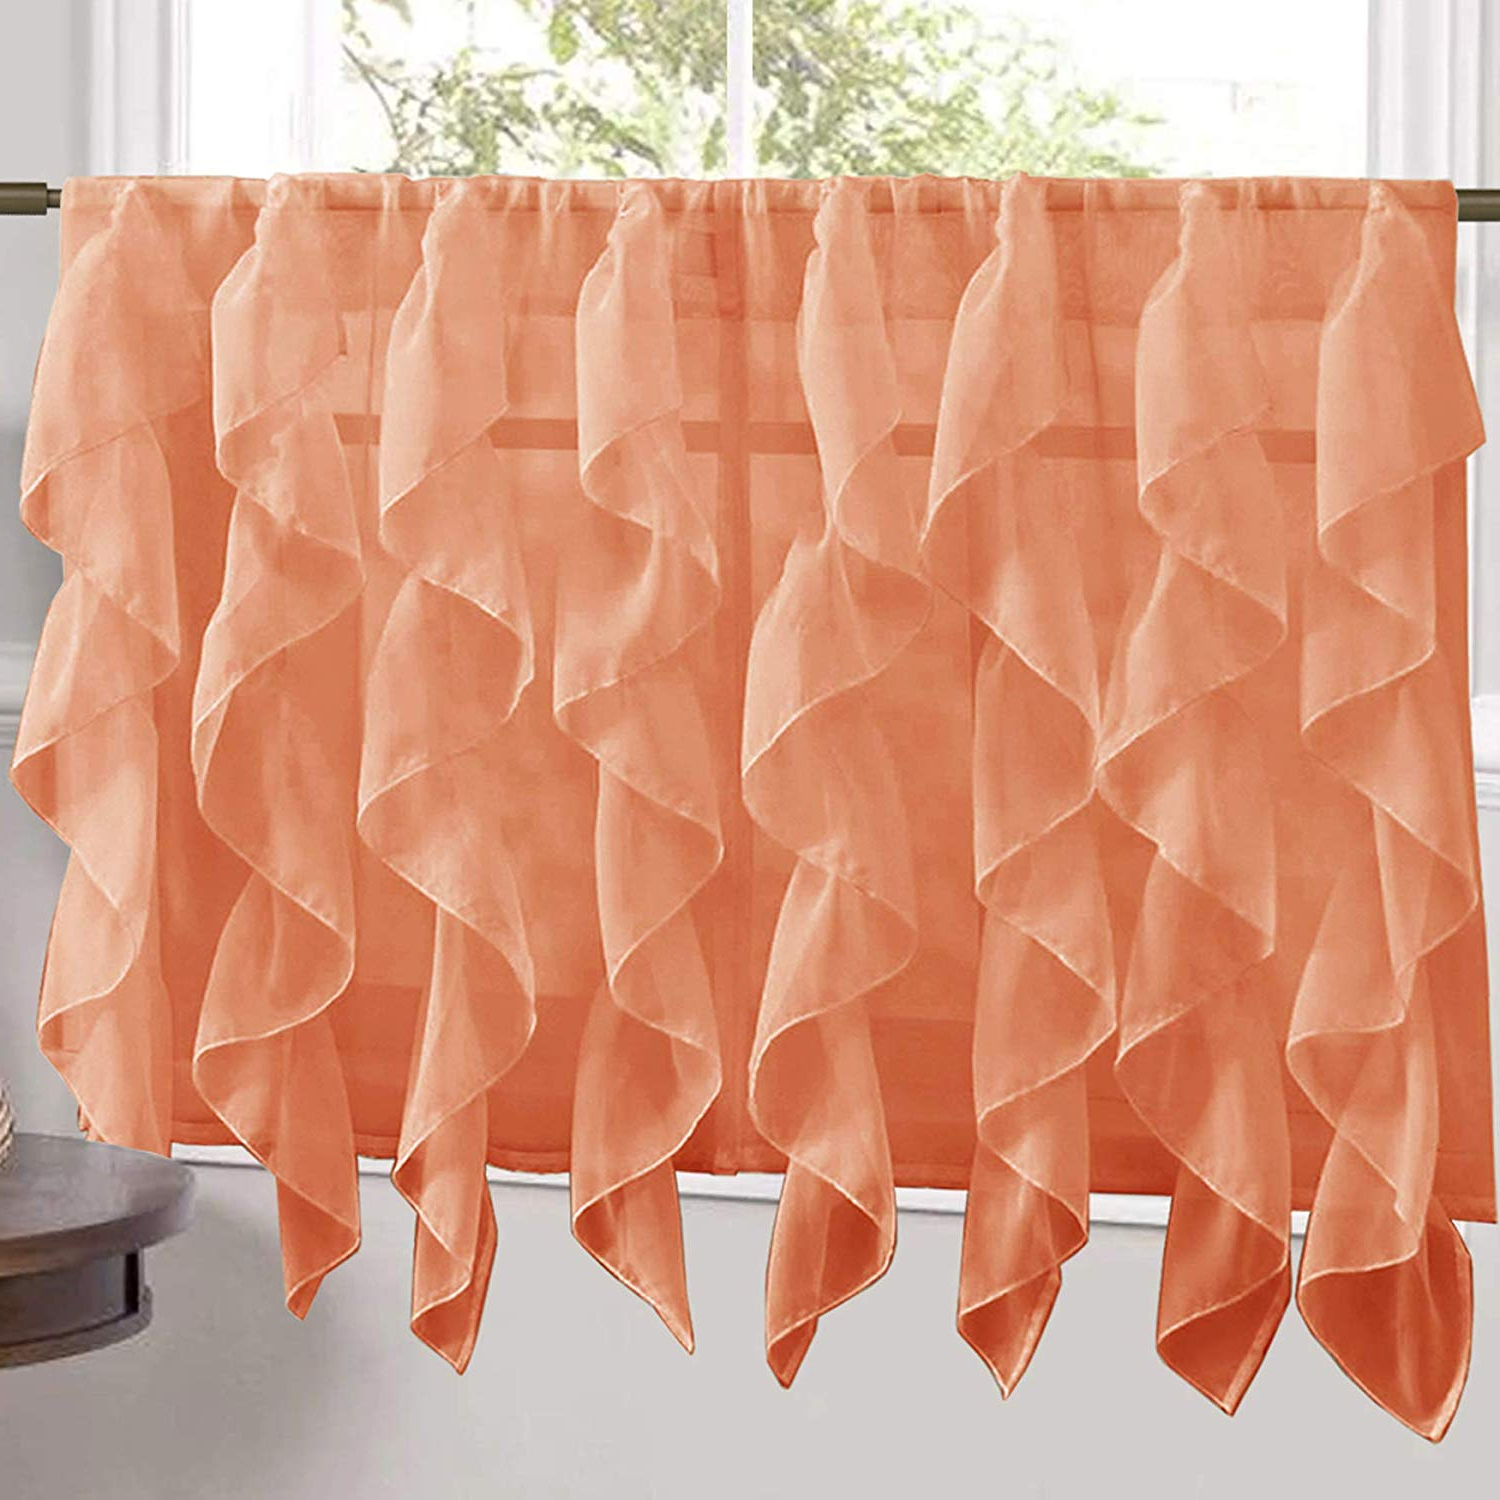 "Latest Vertical Ruffled Waterfall Valance And Curtain Tiers Inside Sweet Home Collection Veritcal Kitchen Curtain Sheer Cascading Ruffle  Waterfall Window Treatment – Choice Of Valance, 24"" Or 36"" Teir, And Kit,  Tier (Gallery 16 of 20)"